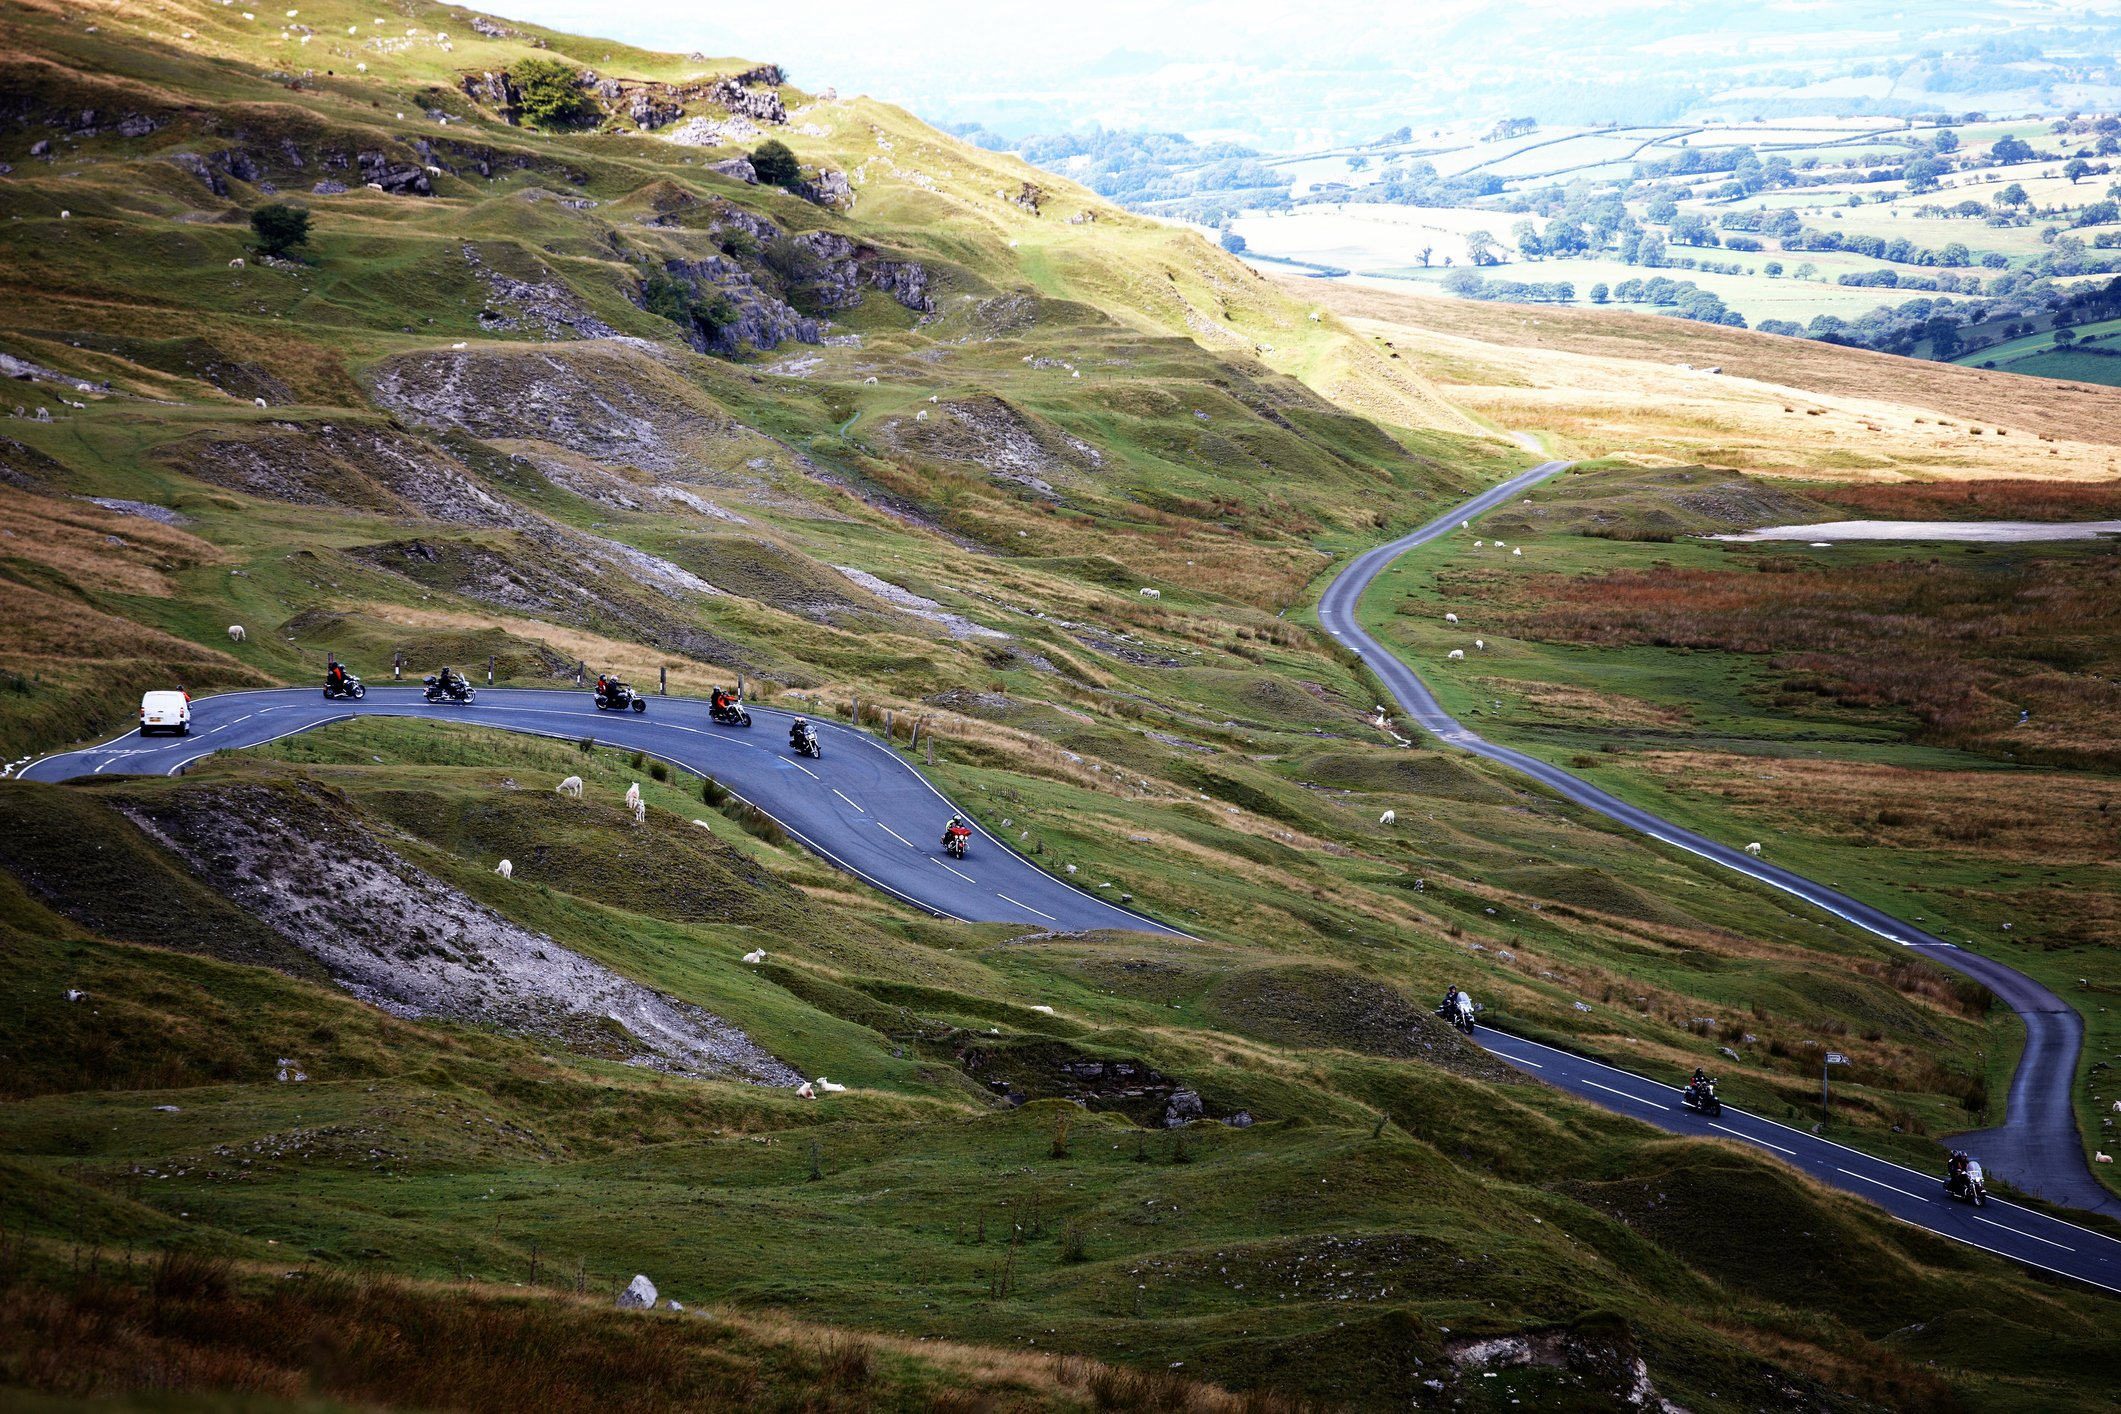 Motorcyclists on Brecon Beacons Road